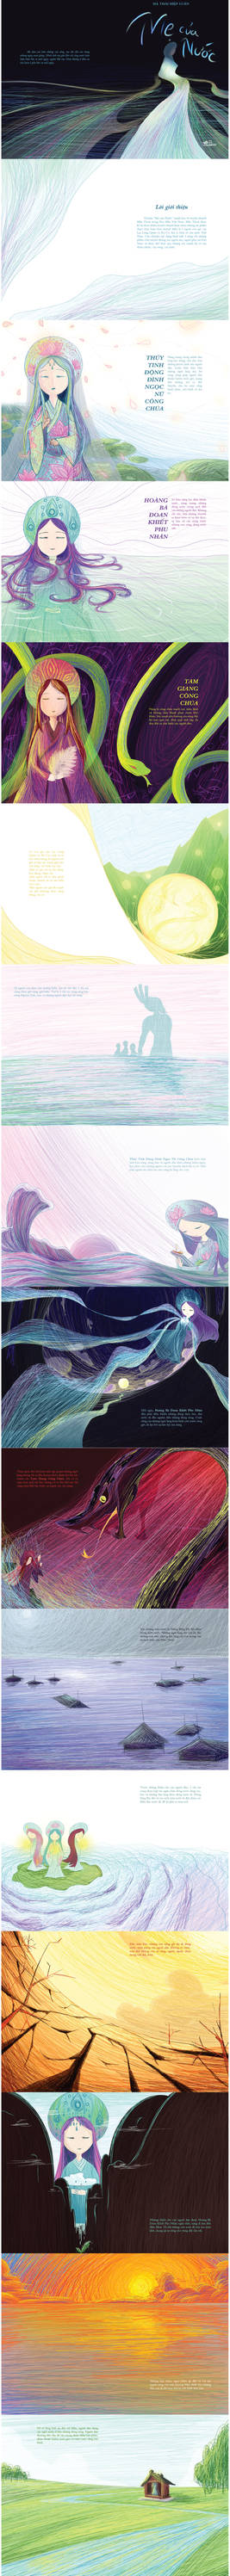 Mother of Water Illustration Book